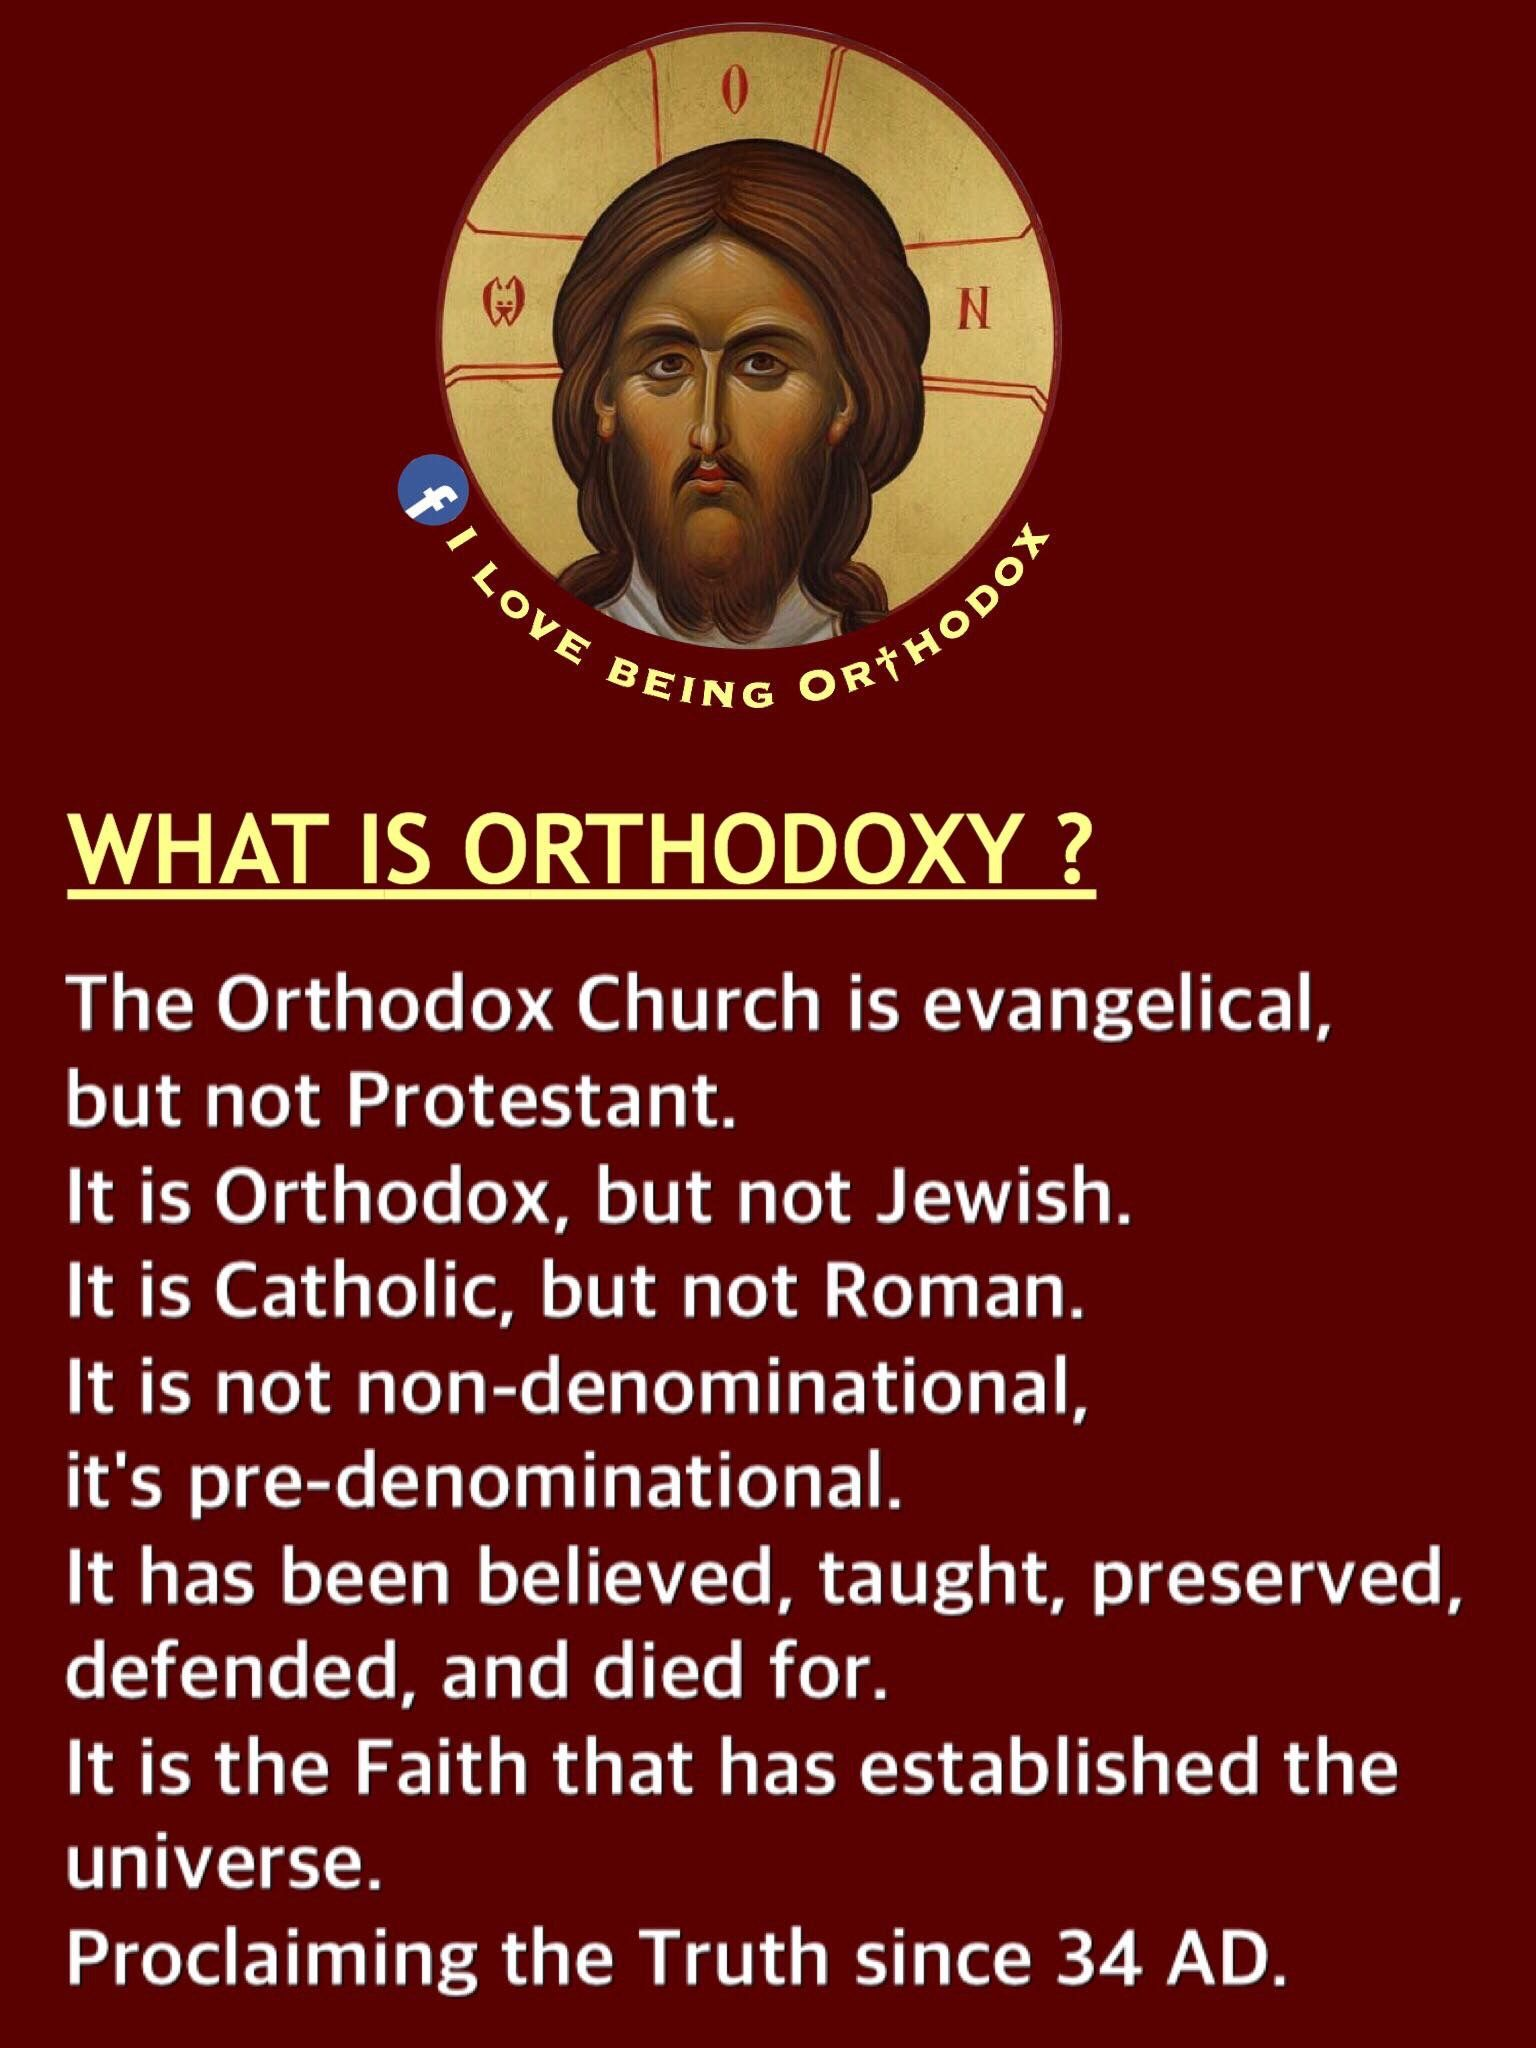 Strong prayer for work - between Orthodoxy and mysticism